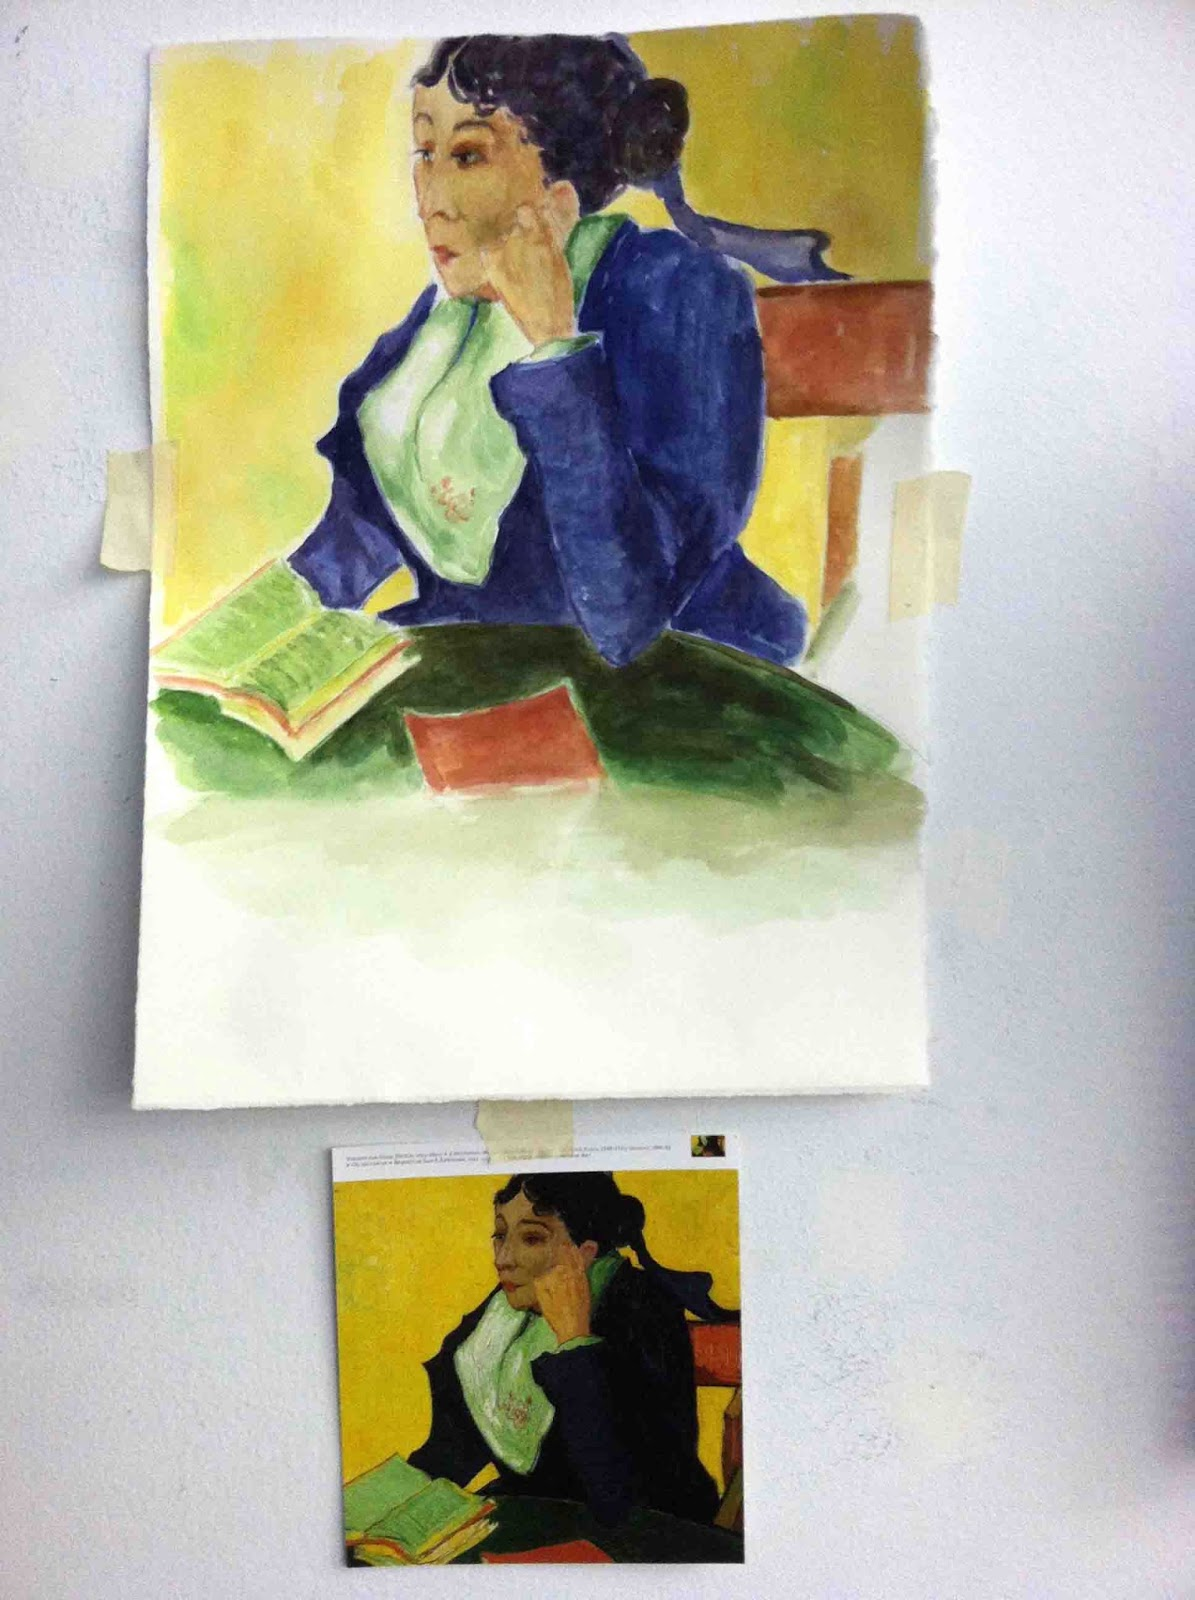 Watercolor art society houston tx - Want To See More Check Out My Previous Posts On This Blog